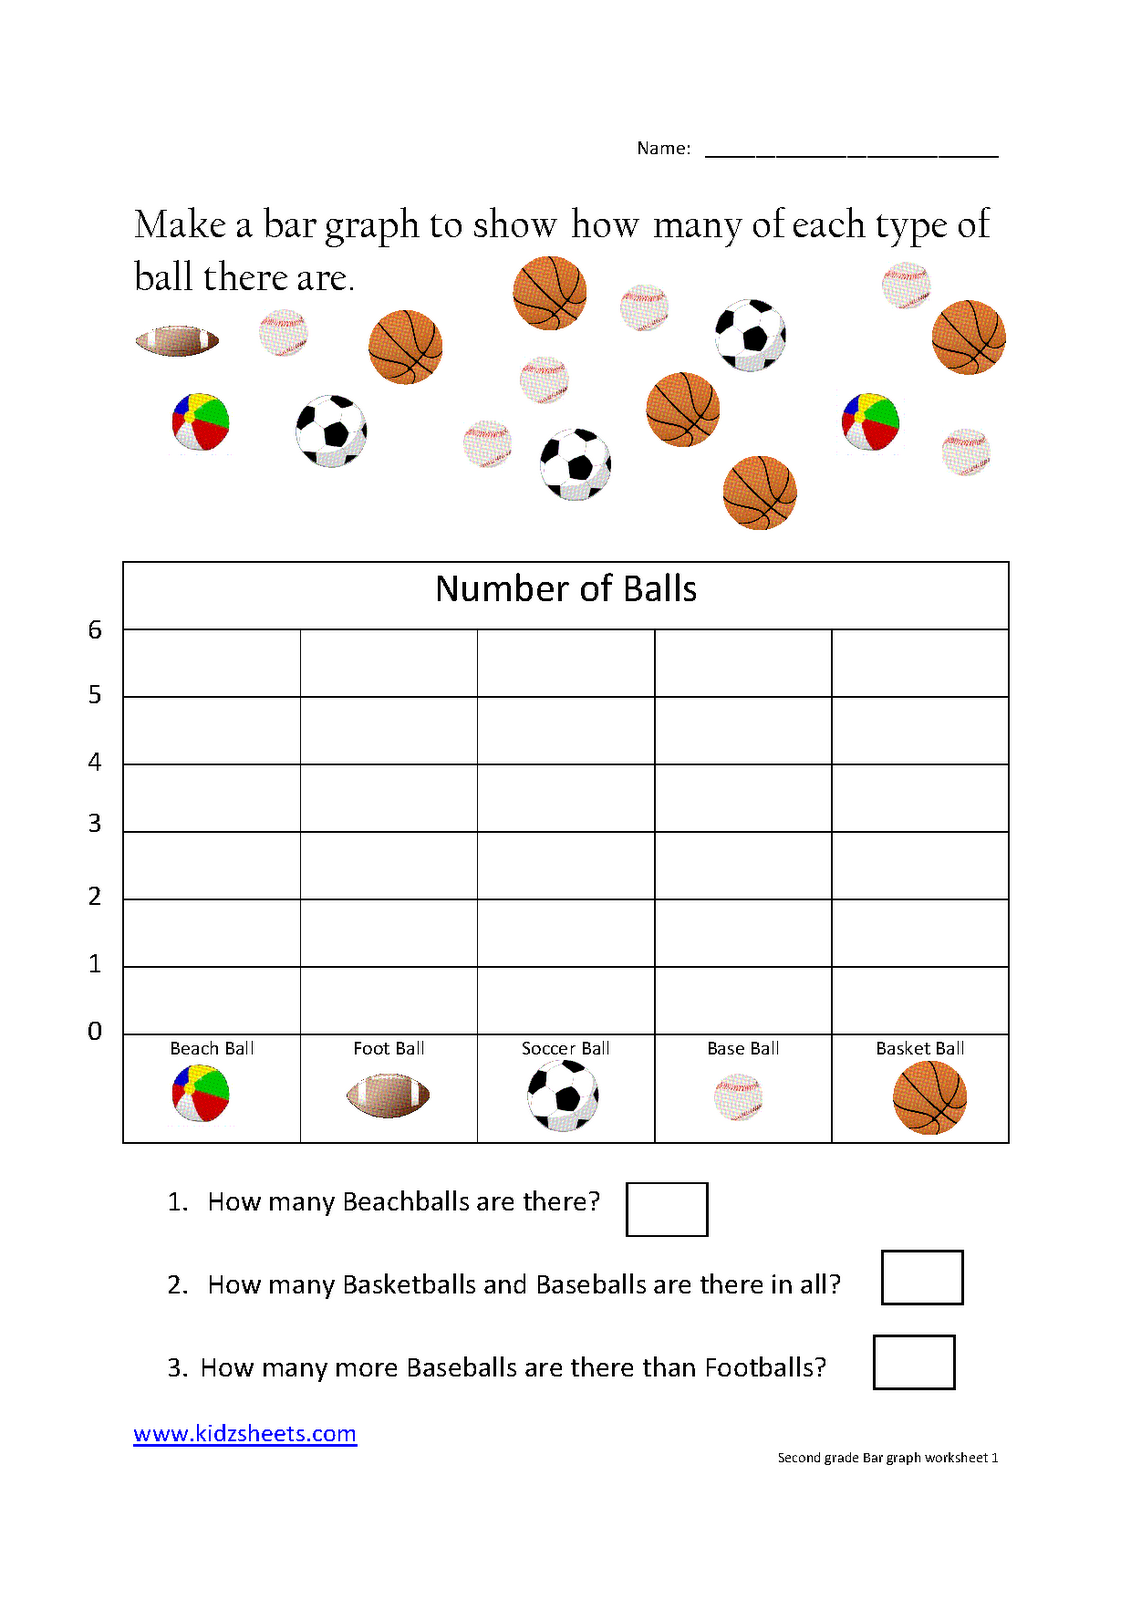 Worksheets Graph Worksheets kidz worksheets second grade bar graph worksheet1 graph